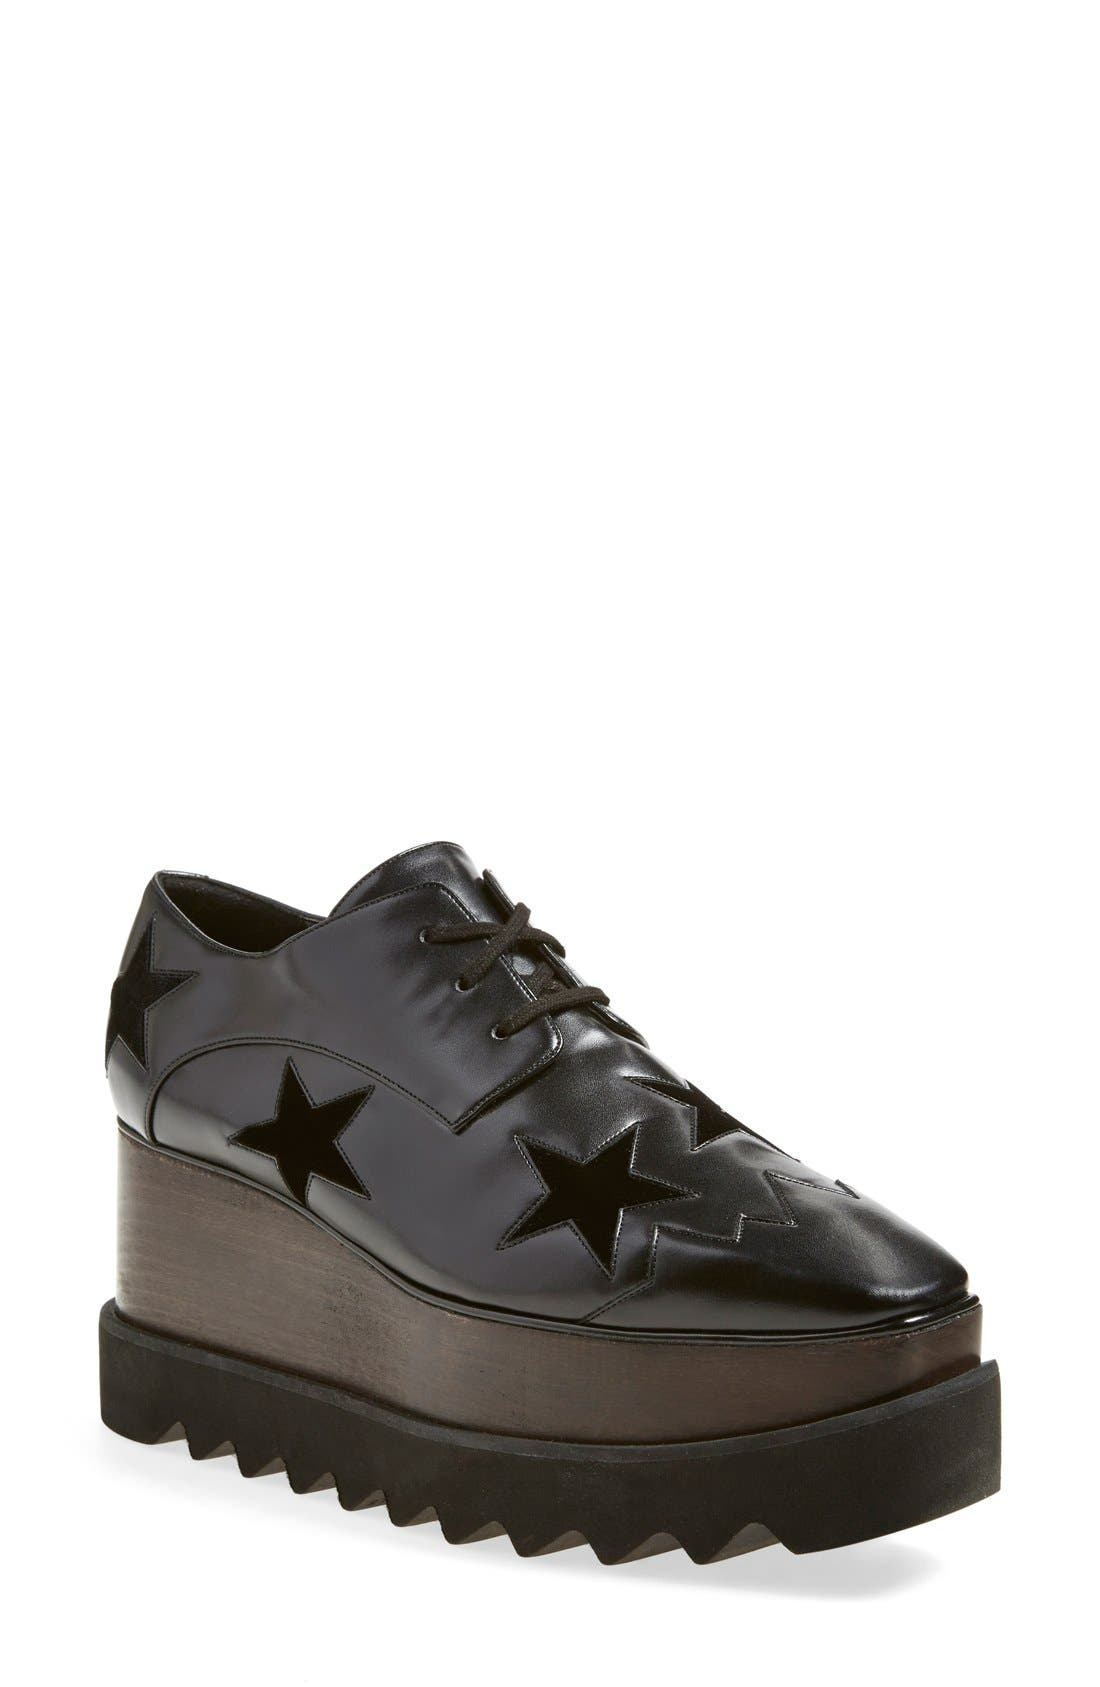 STELLA MCCARTNEY 'Elyse' Platform Derby